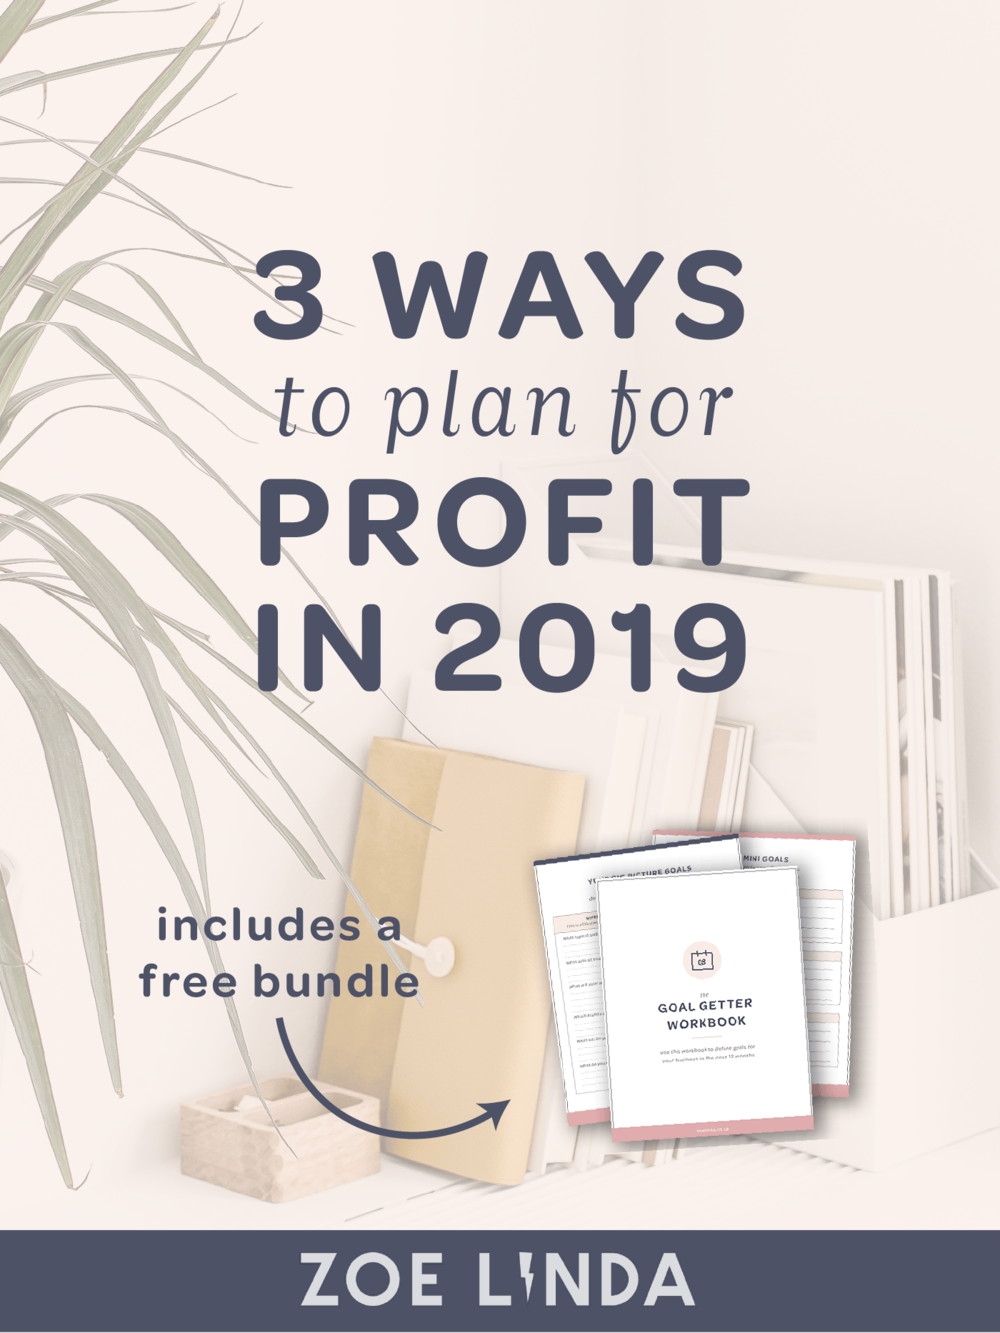 3 Ways To Plan For Profit in 2019 | Do you want to generate consistent income in 2019? Click here to learn how to create a sustainable and profitable business plan that leaves you feeling confident and planned for the year ahead! This blog post is perfect for online entrepreneurs, small business owners, and professional bloggers. You can also get free access to my goal setting bundle to help you with your business strategy!